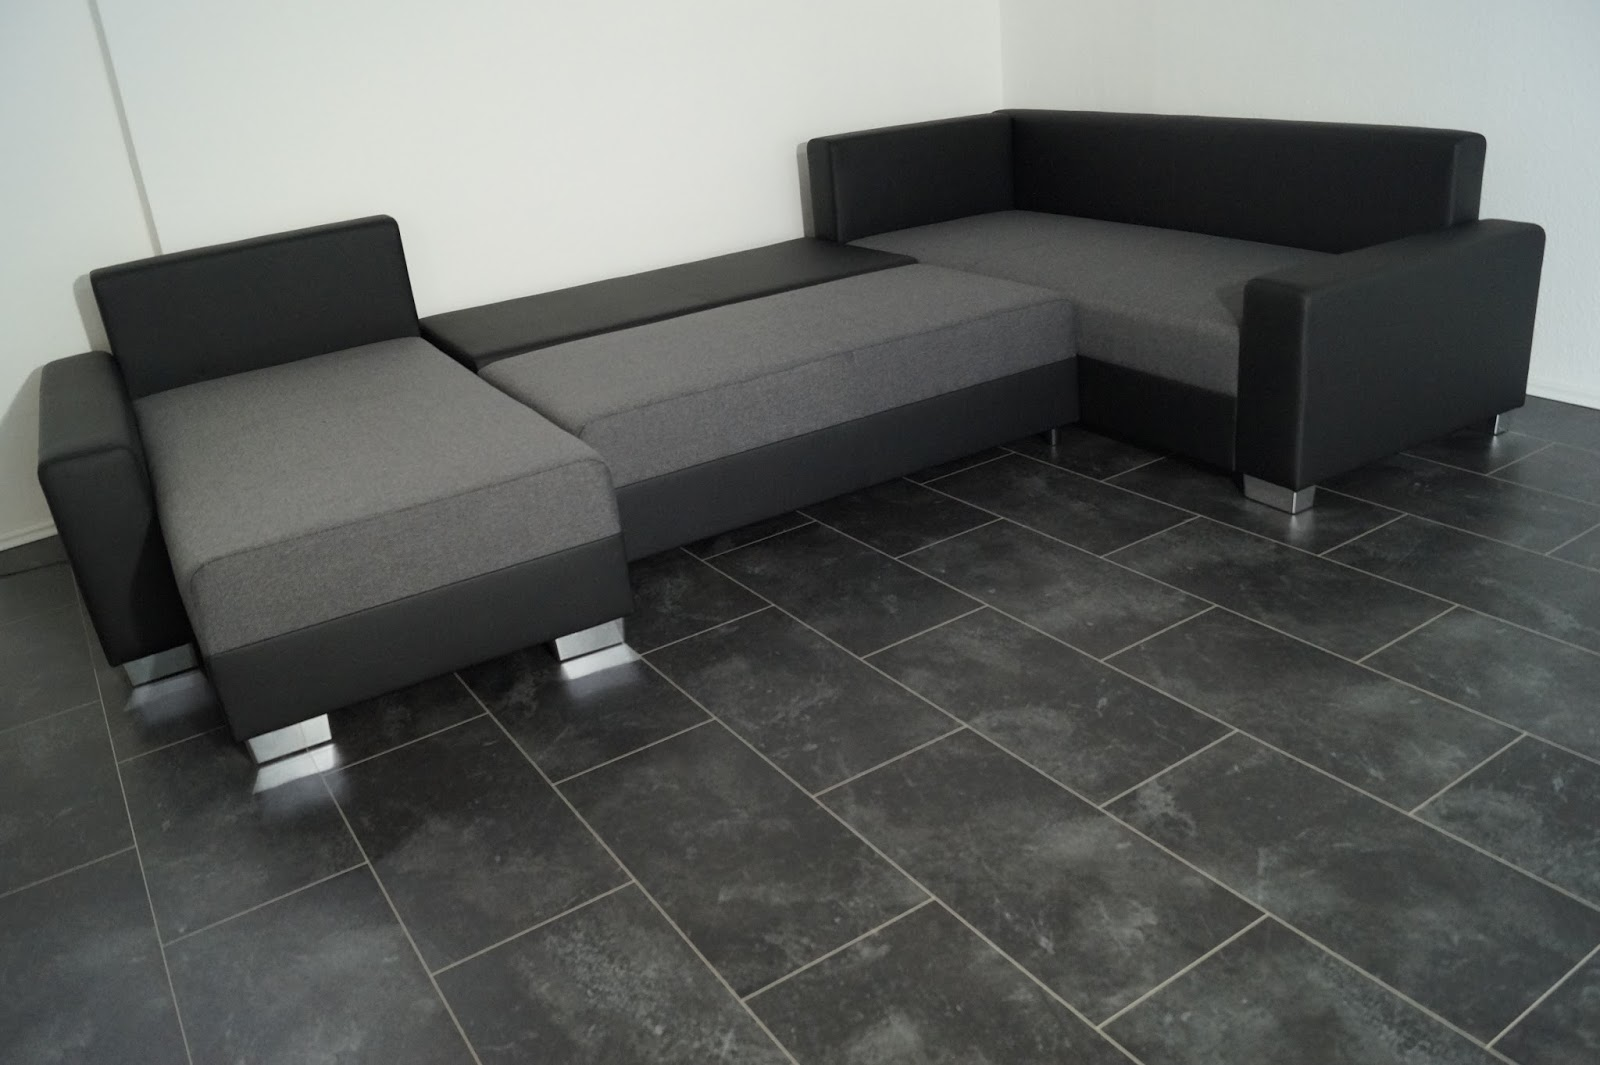 Bettsofa Xl Xl Sofa De Sofa Lagerverkauf De U Sofa Bettsofa